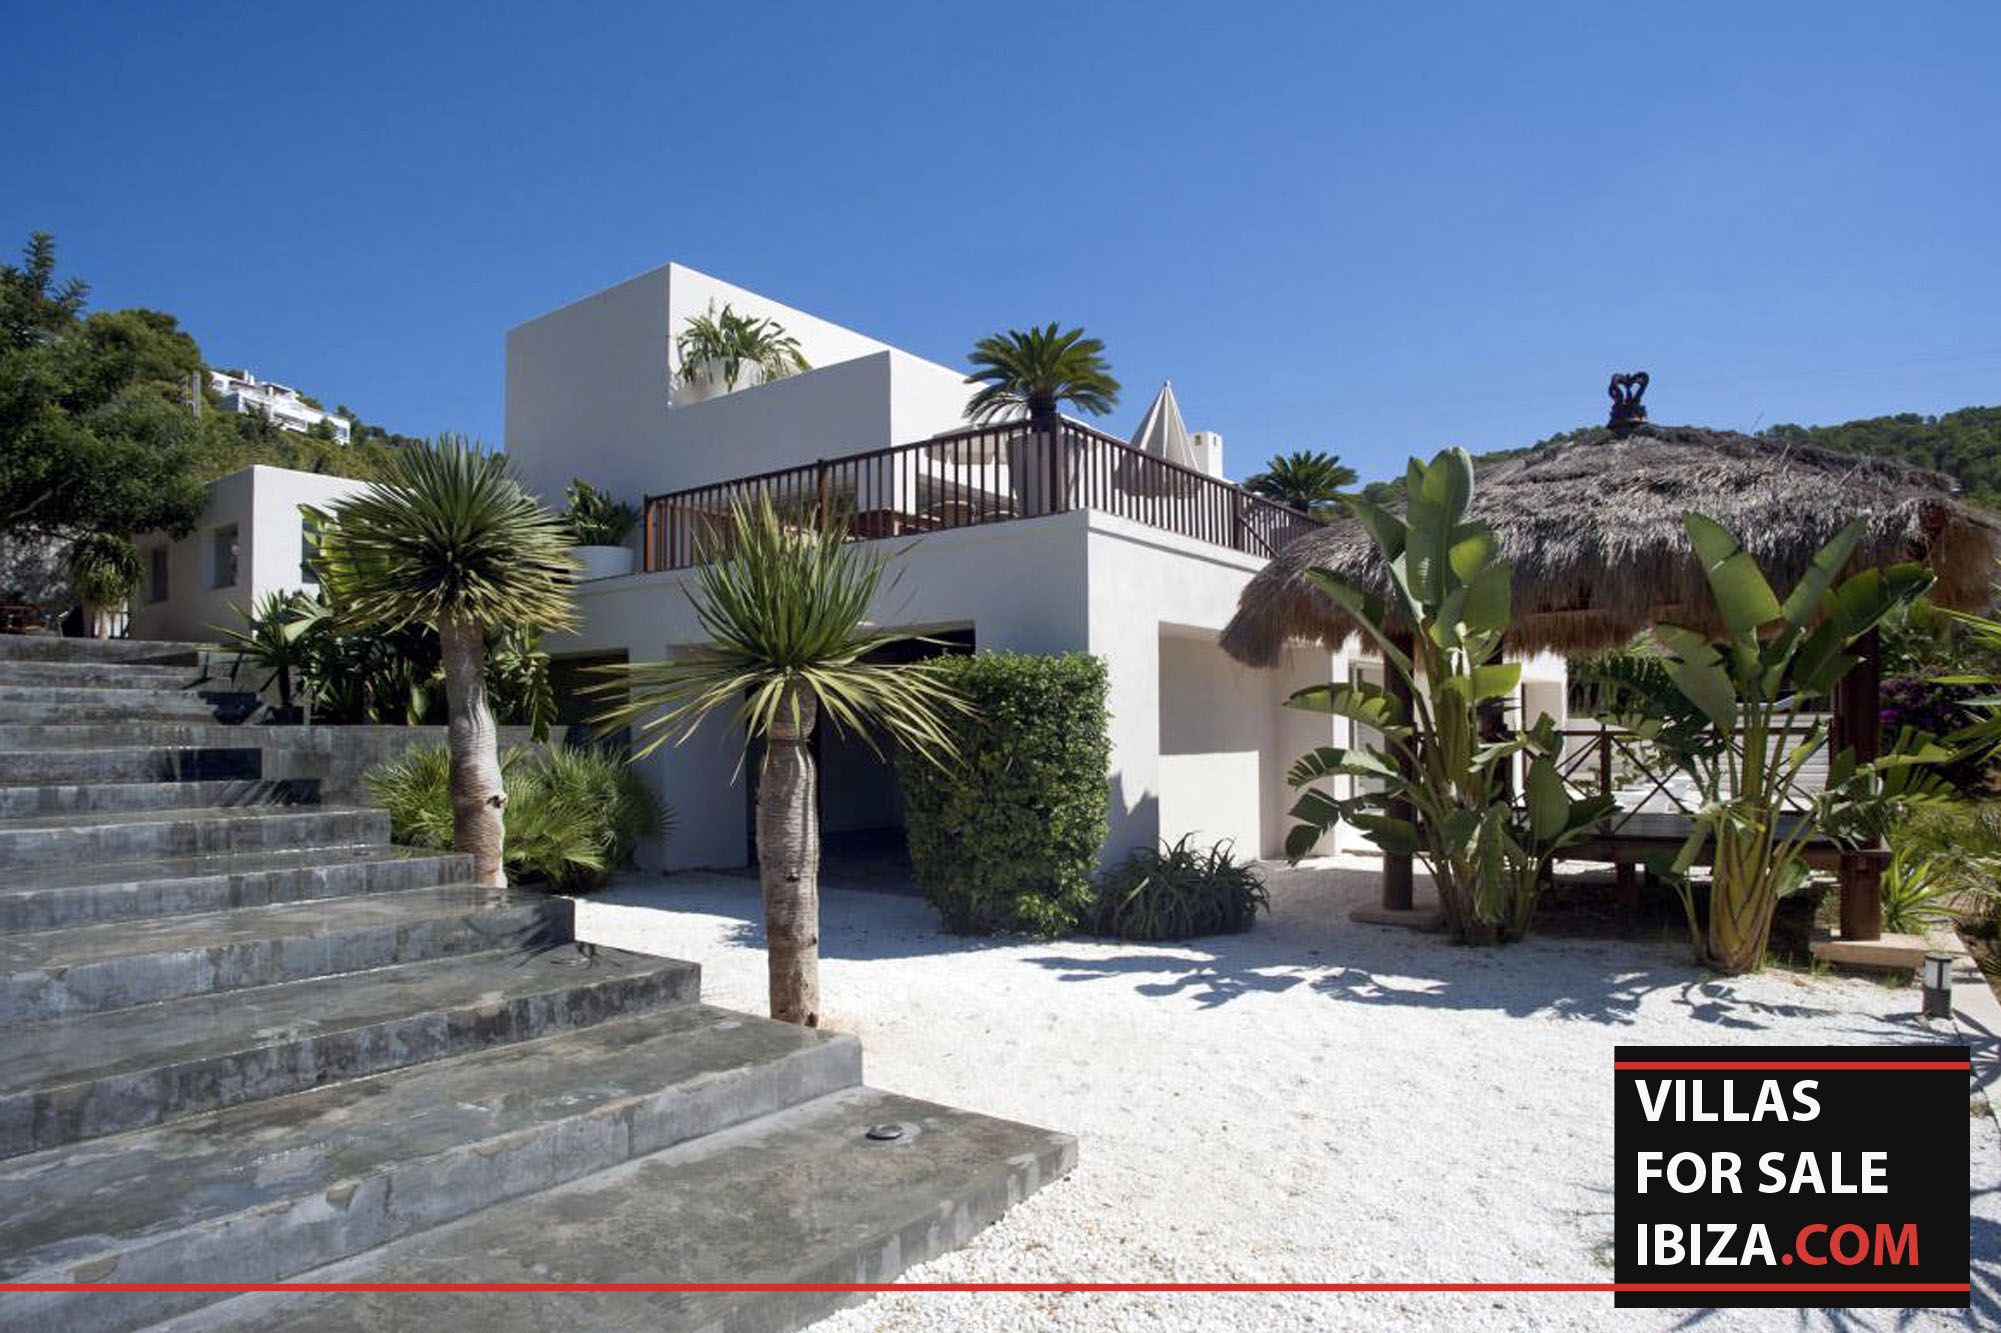 Villas for sale Ibiza - Villa Moonrocket - Salinas - Ibiza Real estate